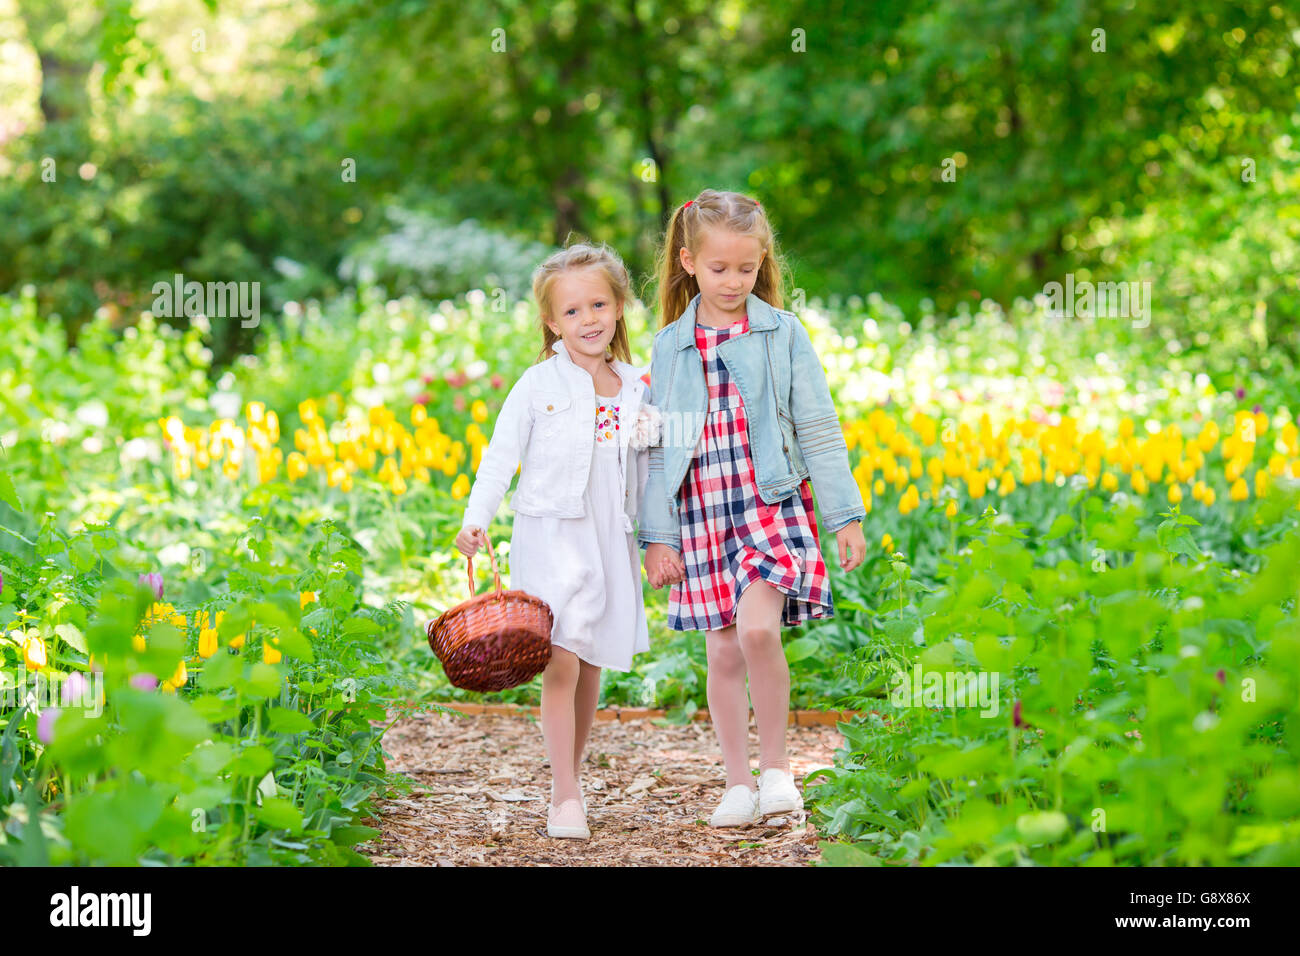 Spring Garden Spring Flowers Adorable Little Girls And Tulips